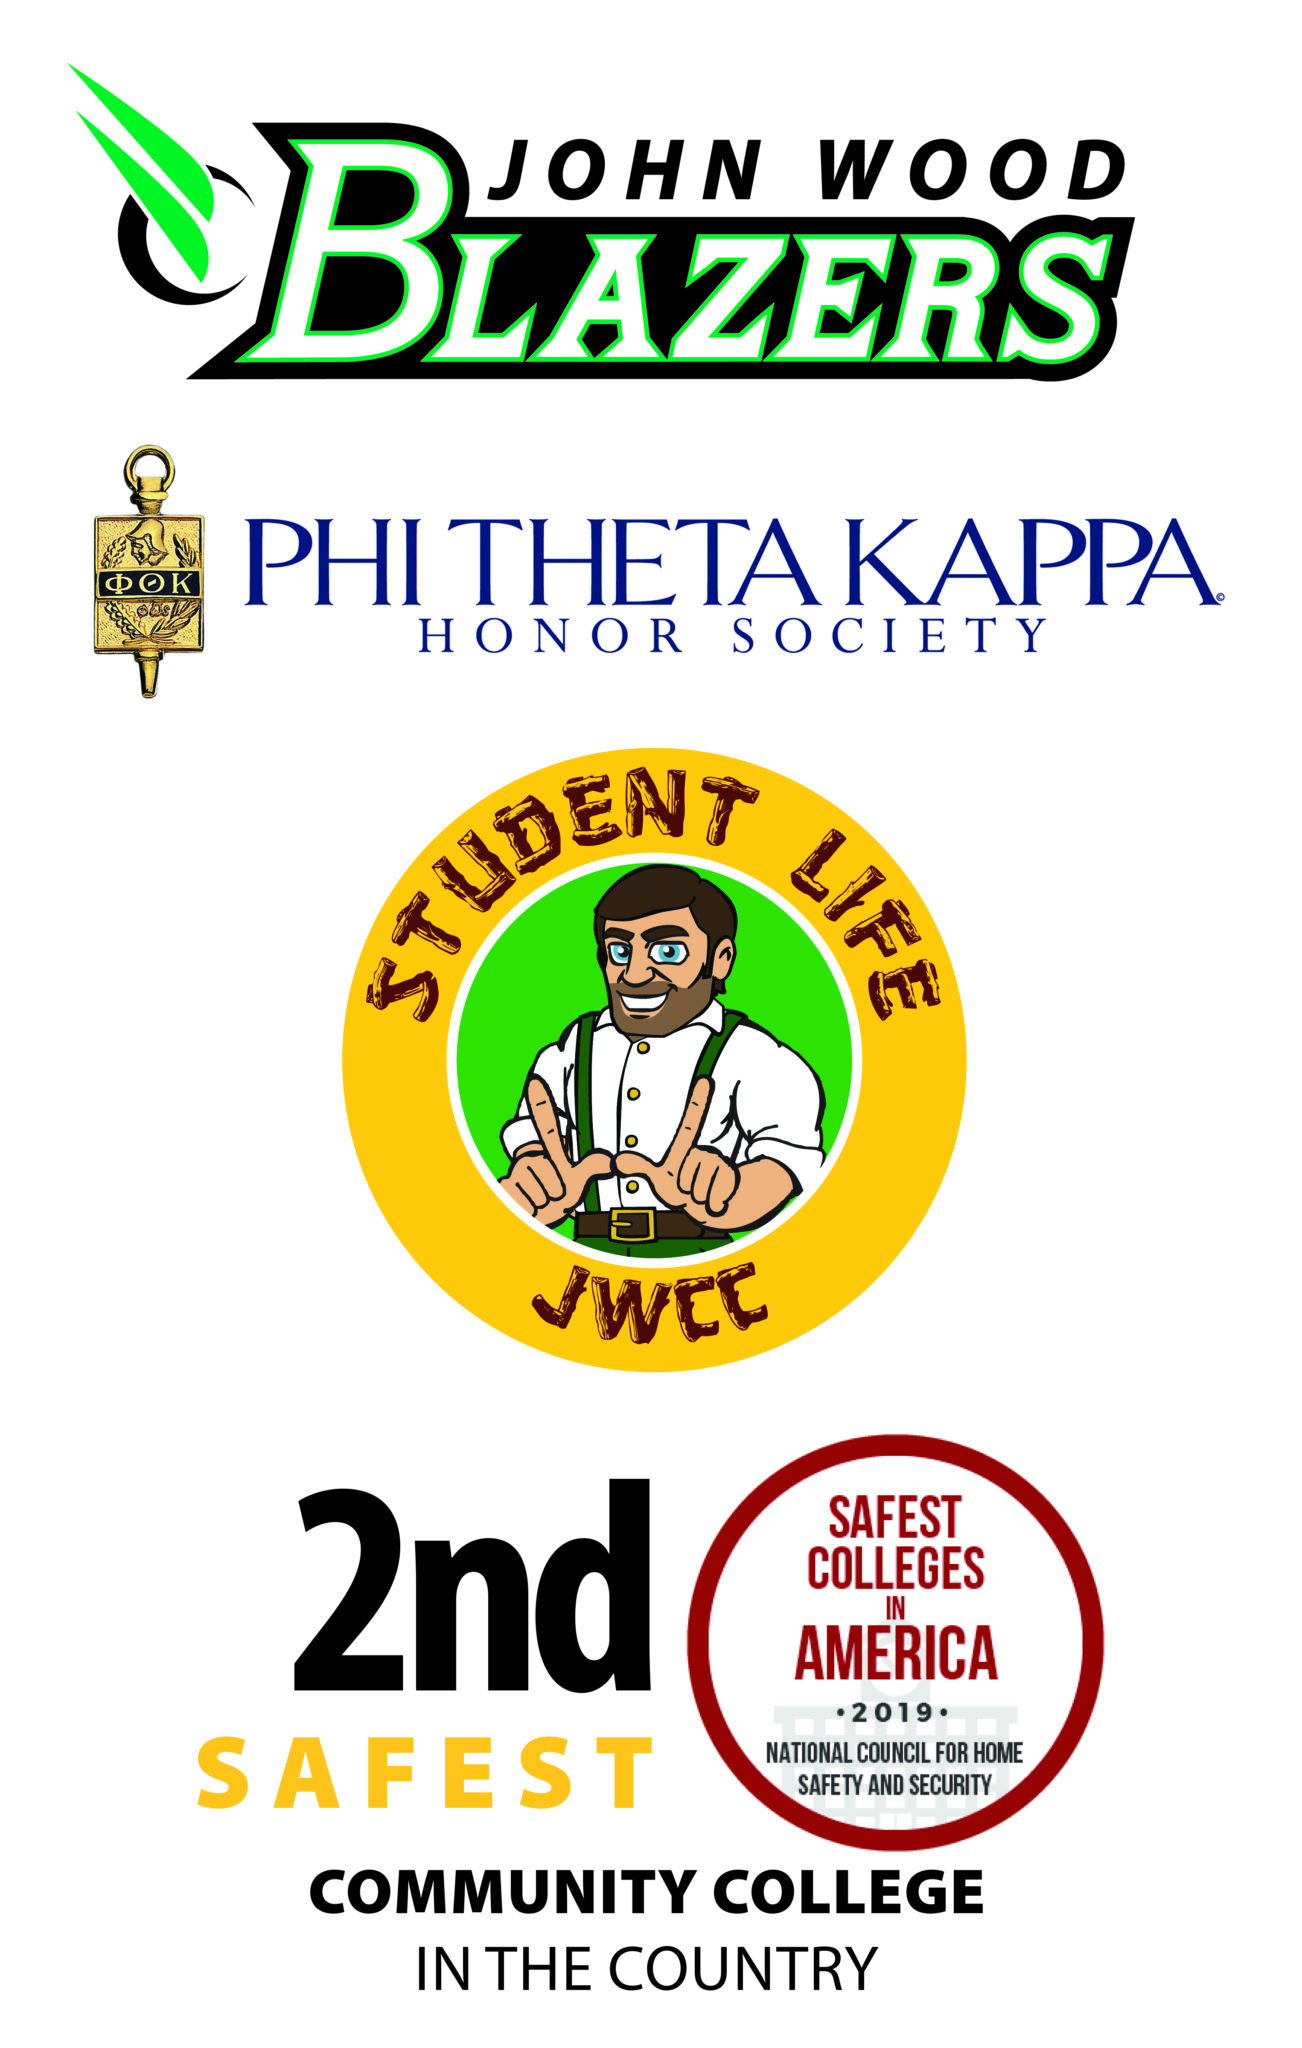 Blazers logo-PTK logo-Student Life-2nd safest community college in the country.